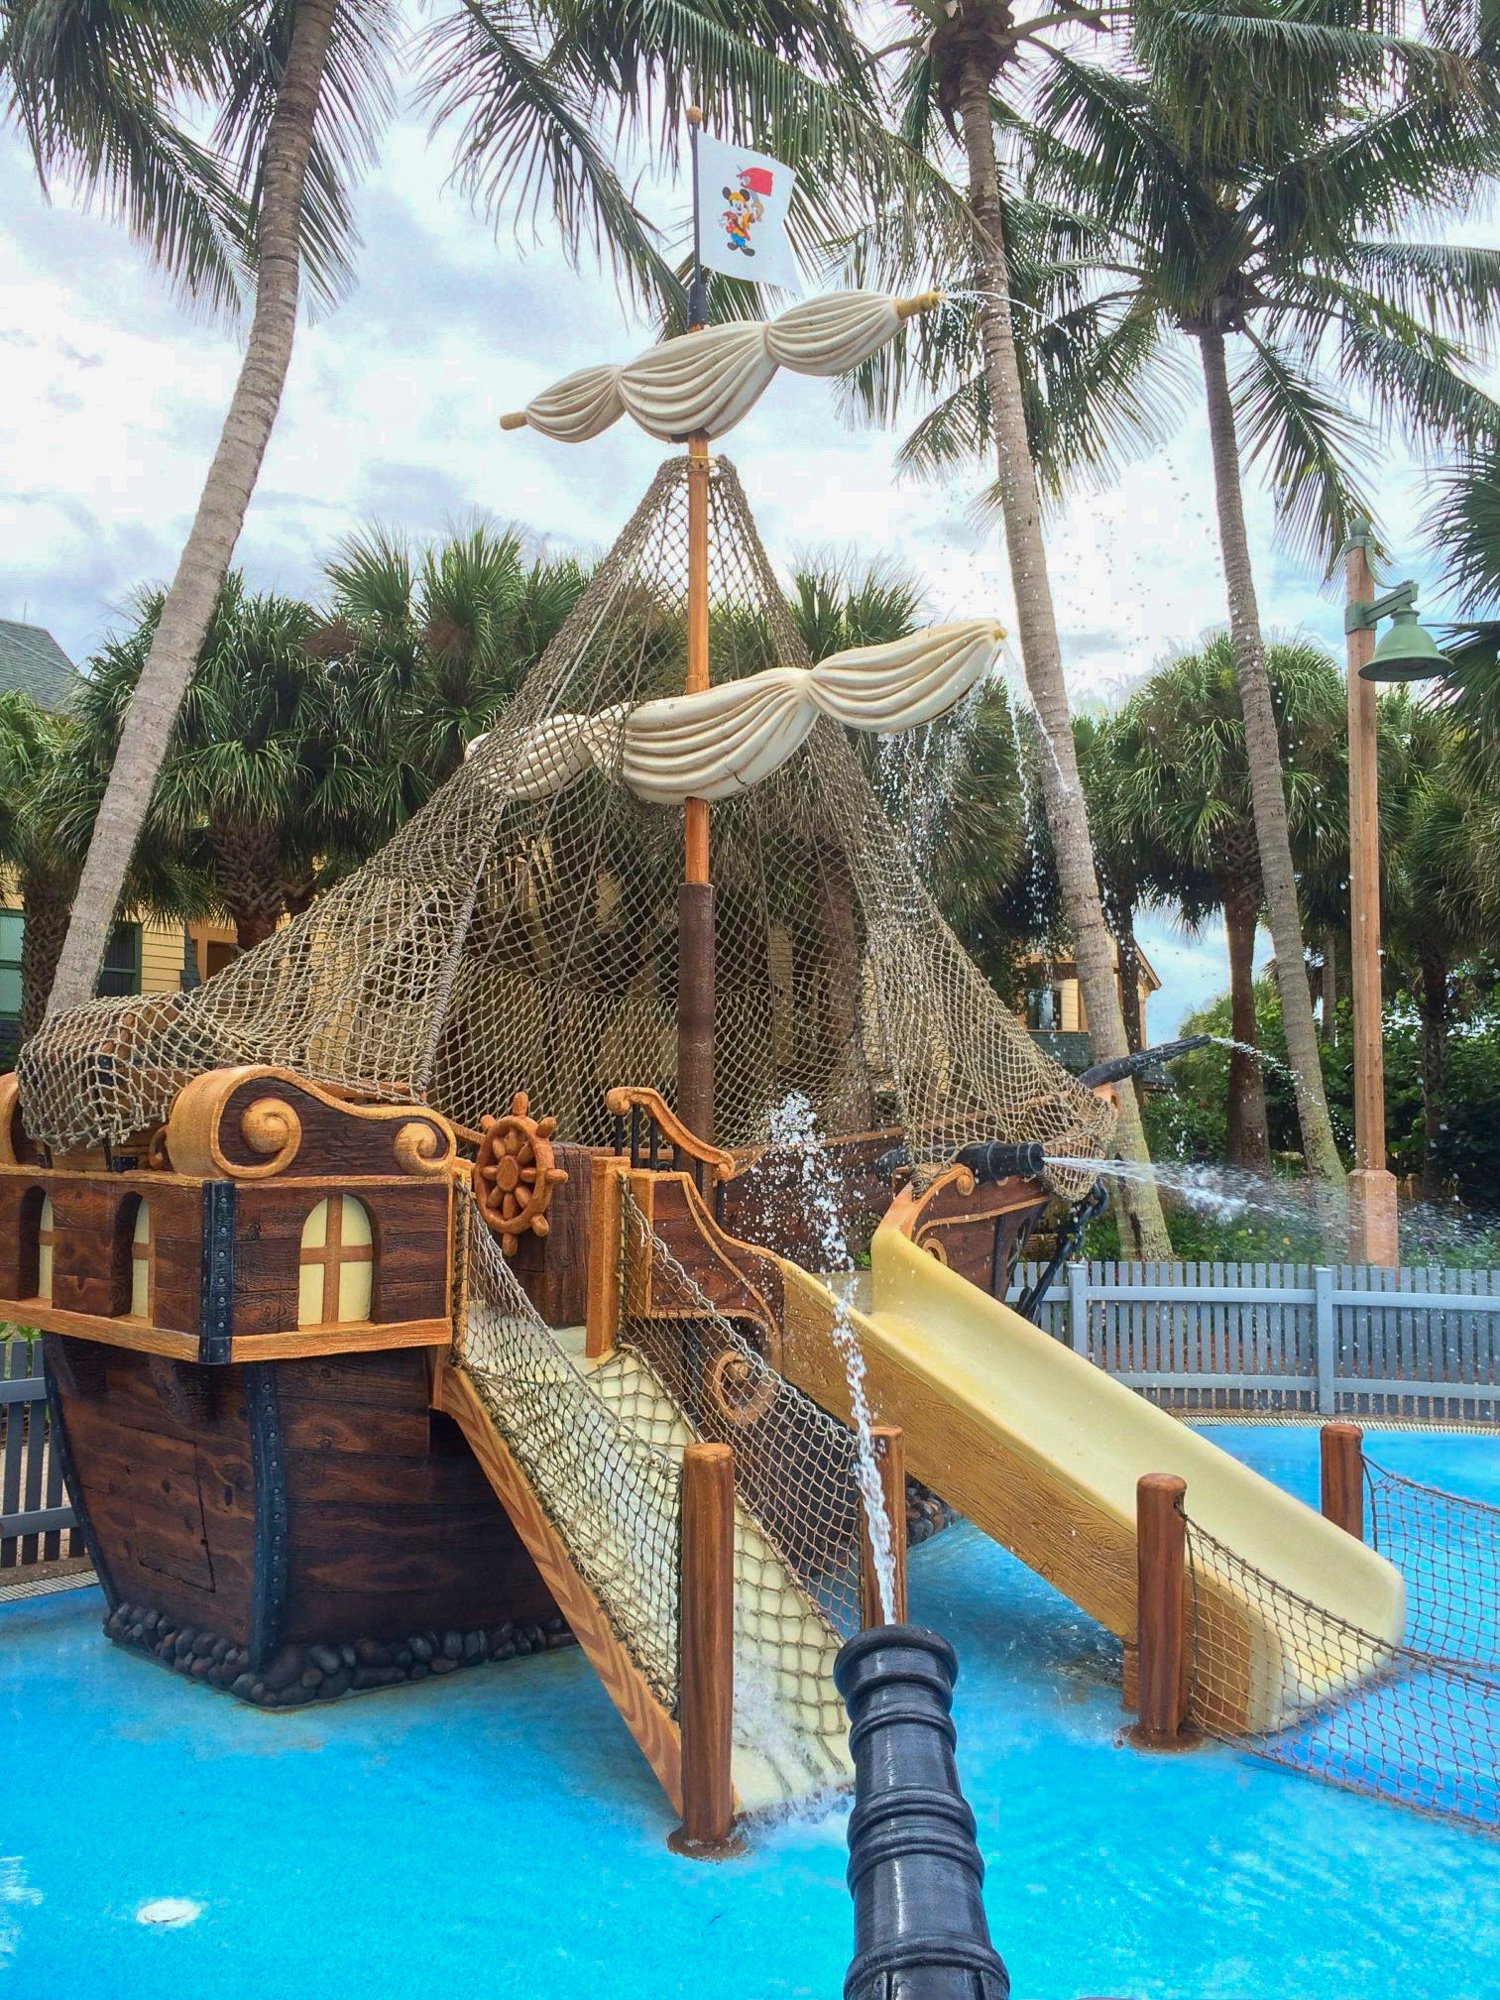 Disney's Vero Beach pirate-themed splash pad